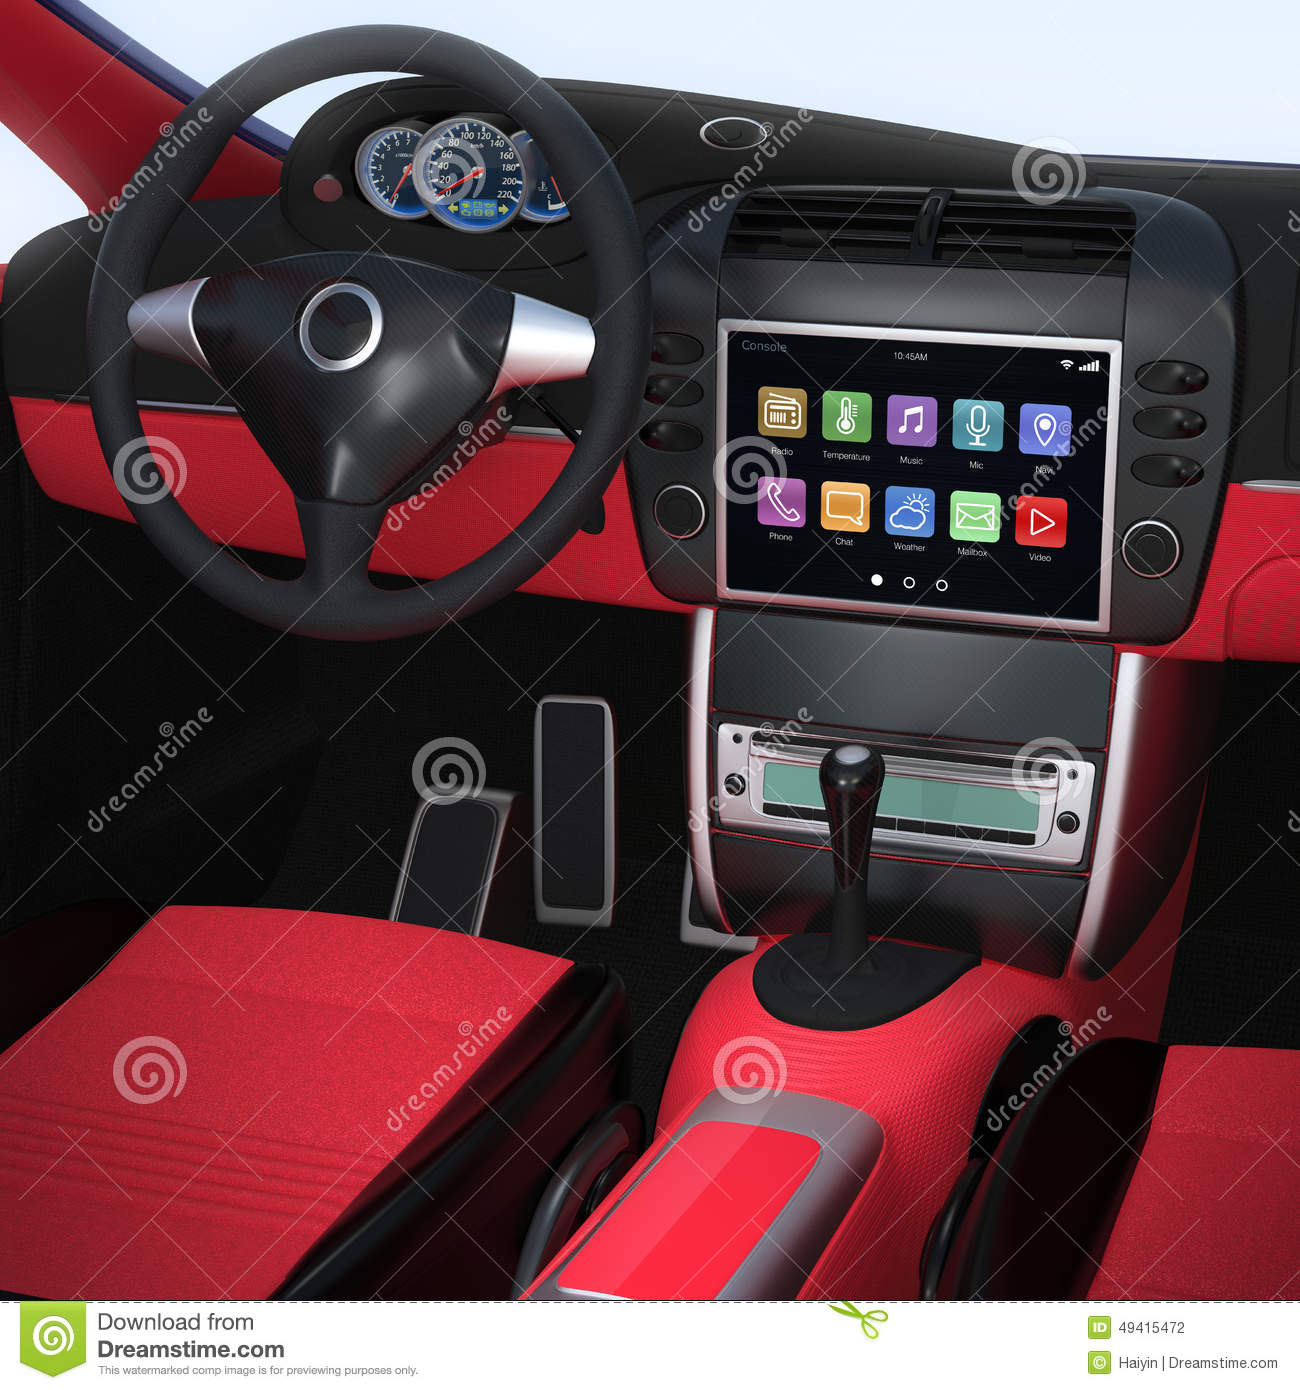 smart car navigation interface in original design stock photo image 49415472. Black Bedroom Furniture Sets. Home Design Ideas